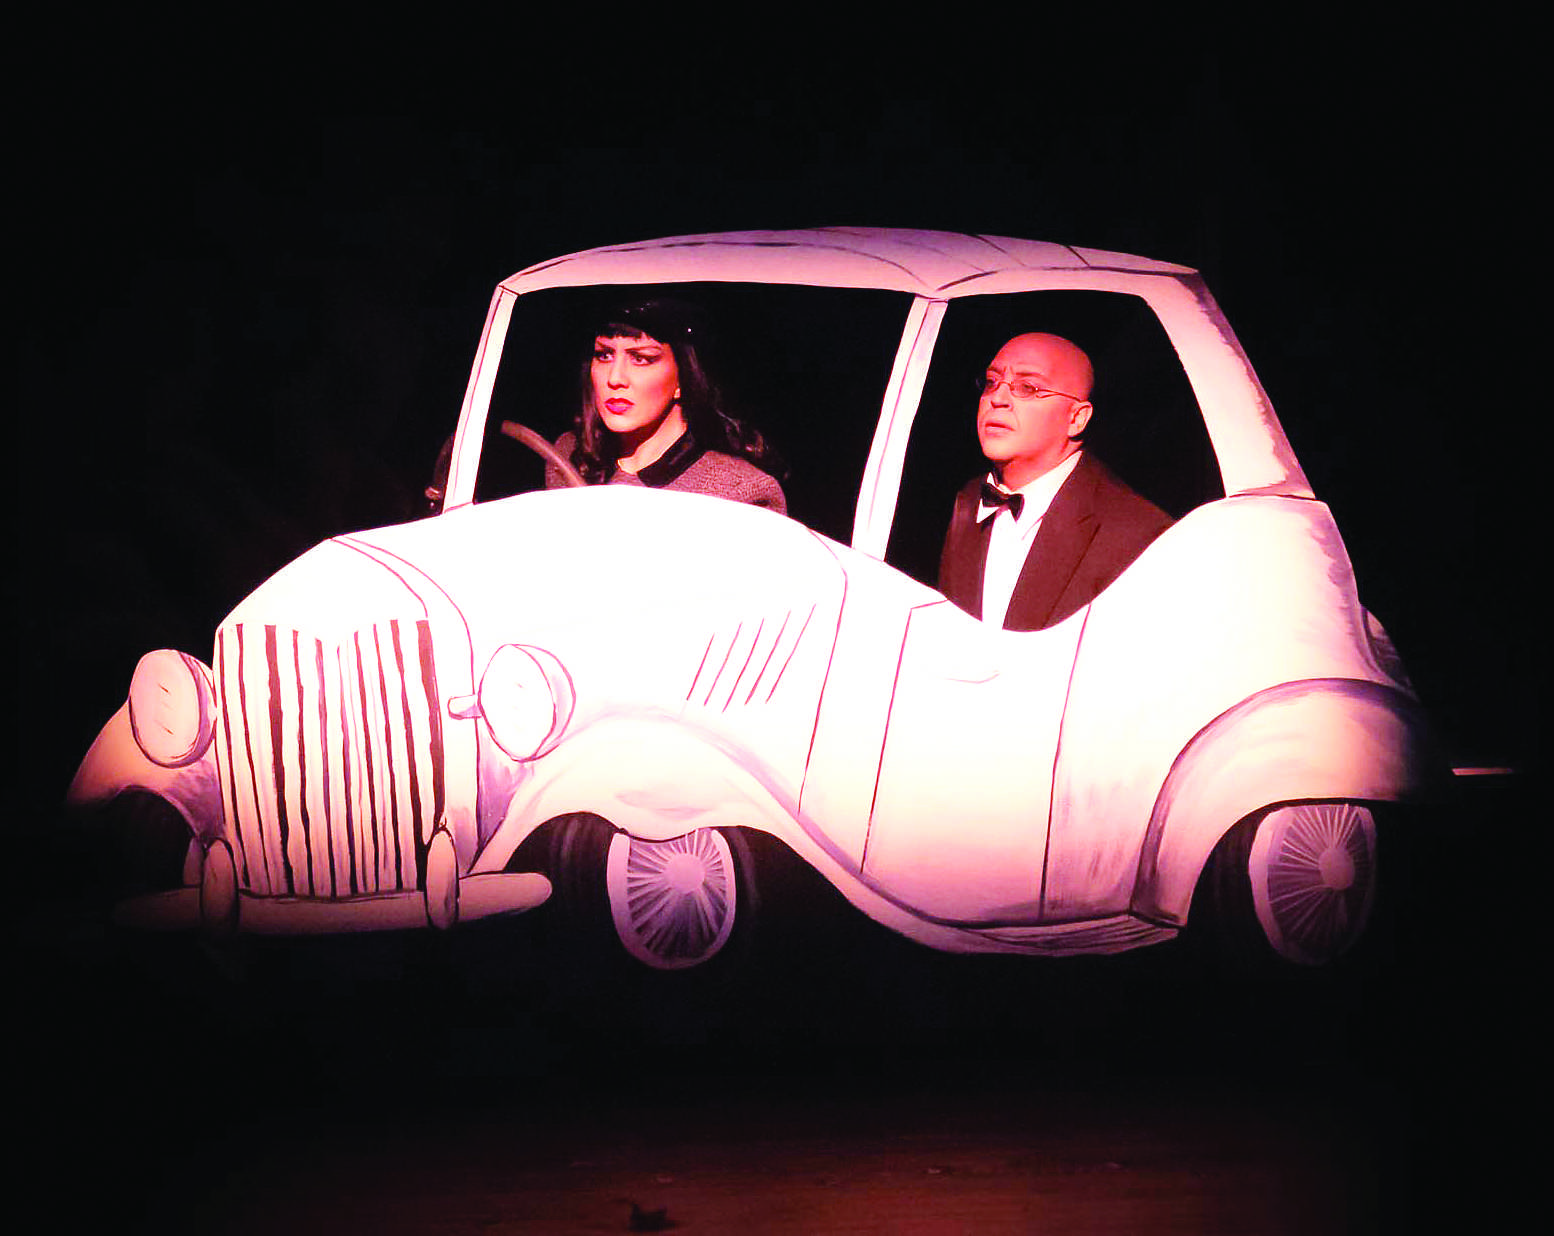 Ailie Holland as Lenya Von Brunno, left, and Justin Batson as Otto Von Brunno perform the car chase scene from Bullshot Crummond in the Lincoln Center. The play is a spoof off of a grade-B detective movies including a damsel in distress and car chases.